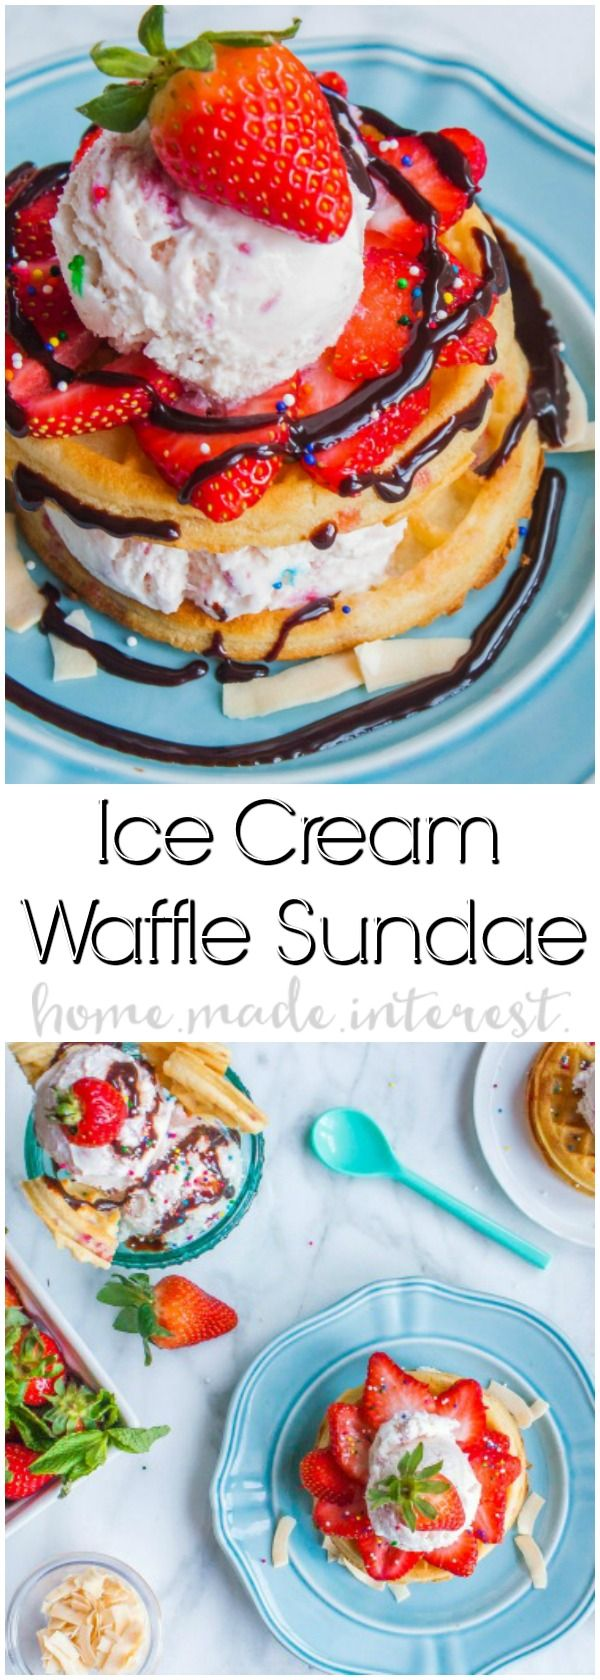 Waffle Sundae | Make this easy Waffle Sundae recipe for a fun family night or just because you want the best sundae ever! Tasty waffles piled high with ice cream and topped with another waffle before covering it with your favorite ice cream toppings. Kids and adults will love this easy dessert recipe! Who wouldn't want ice cream and waffles?! #EggoMyWay | AD